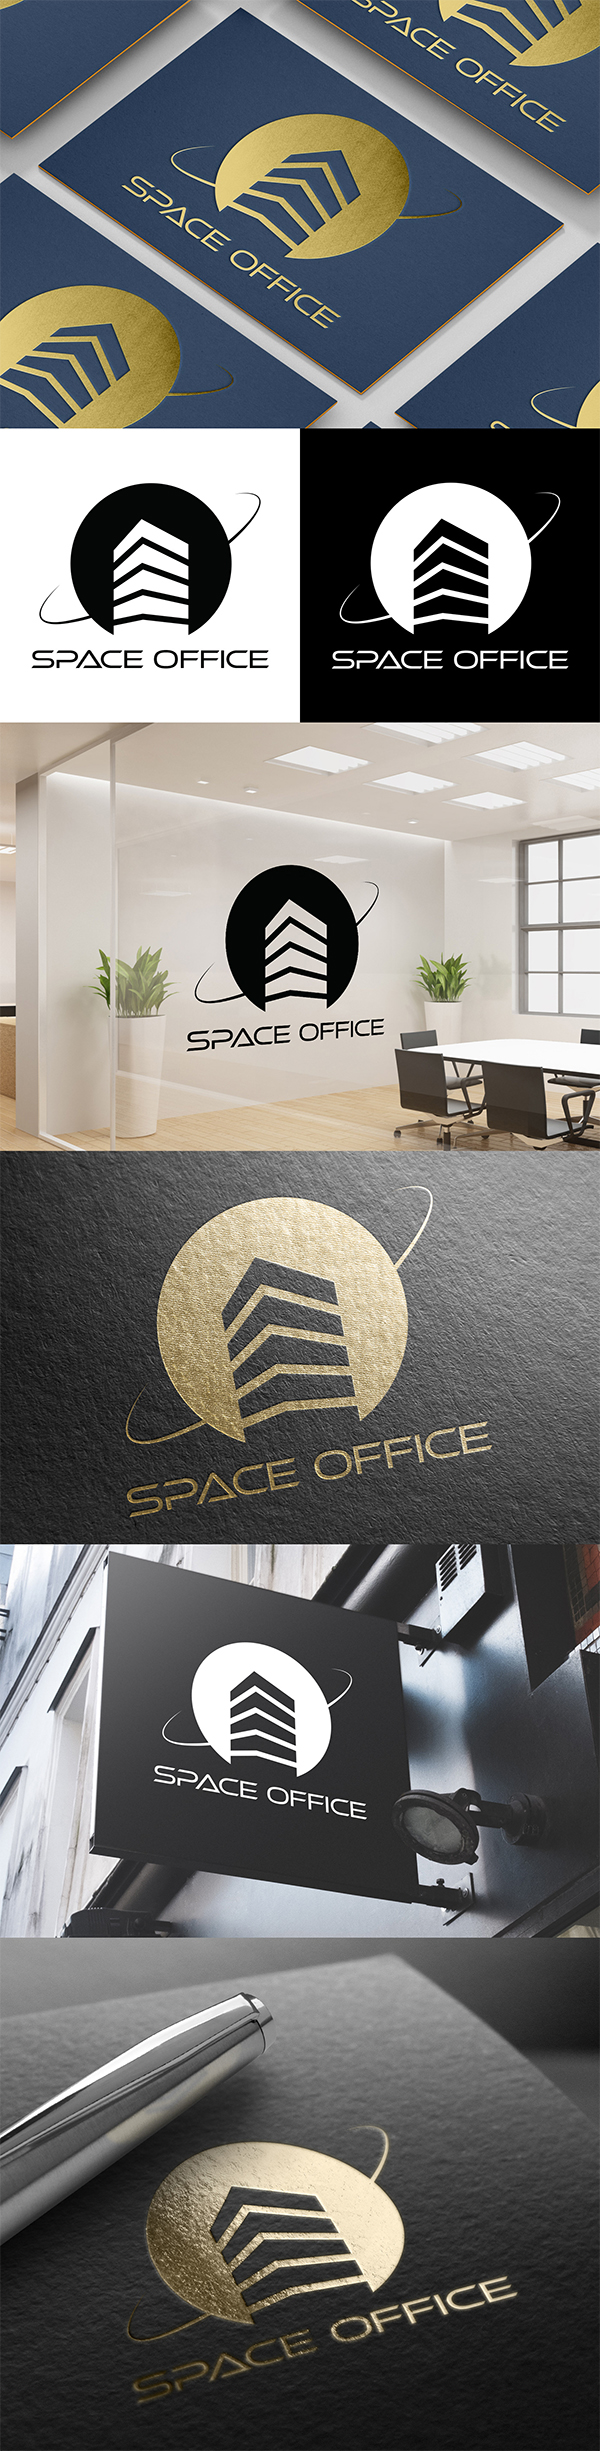 Space Office Logo Design